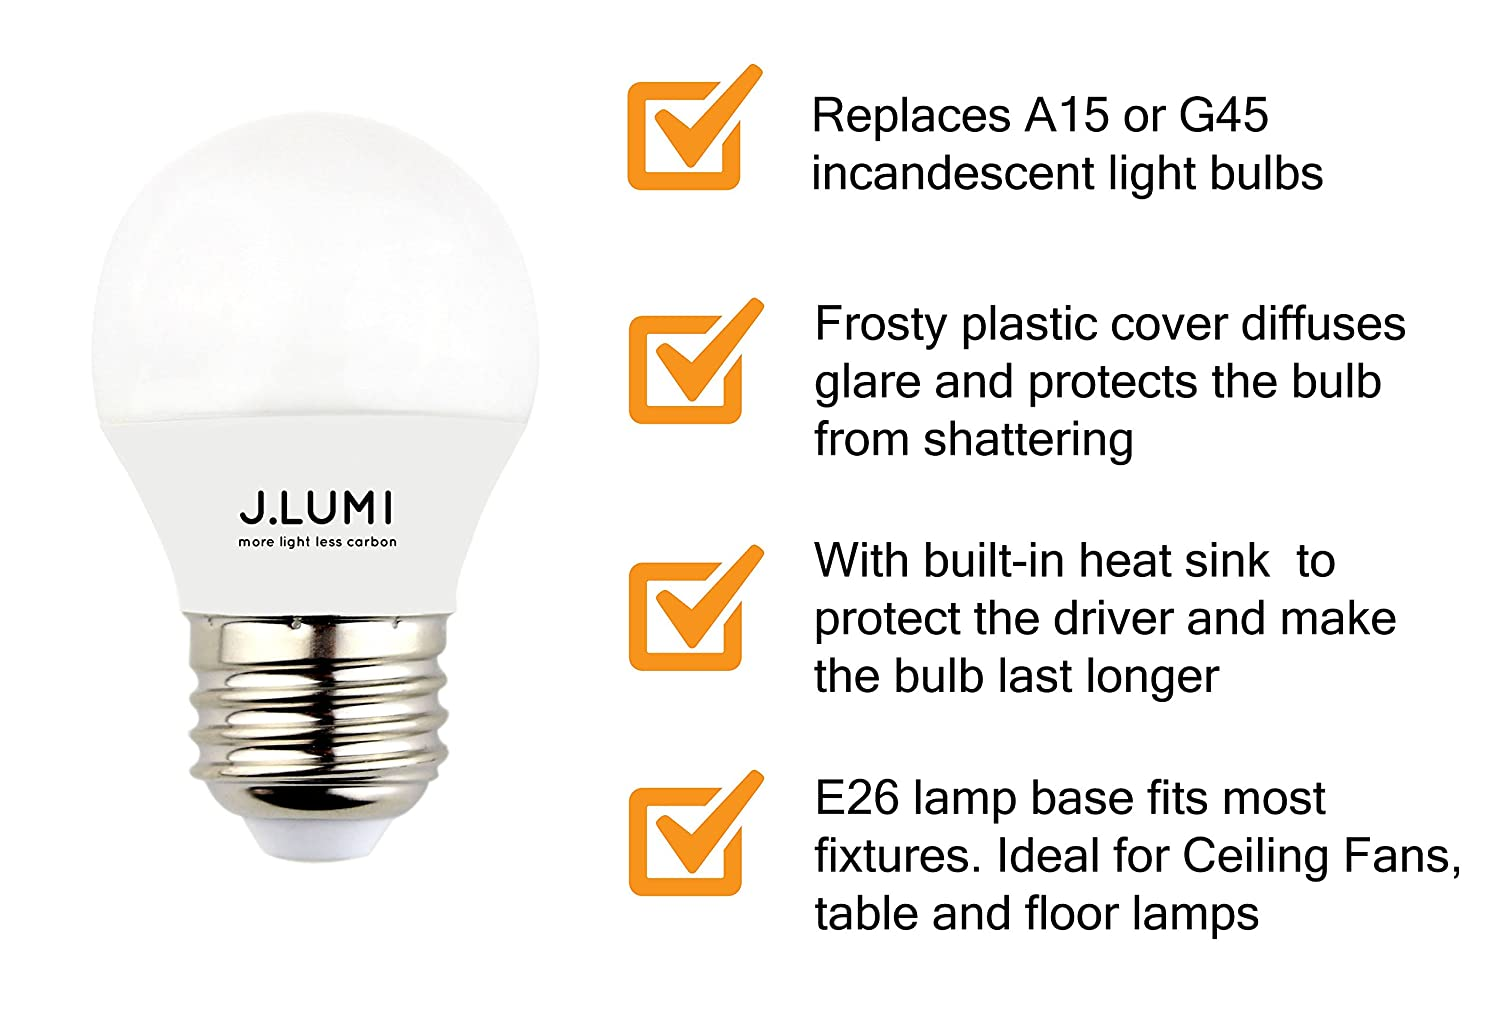 J.LUMI LED light bulb 5W, replaces 40W incandescent, A15 or G45 ...